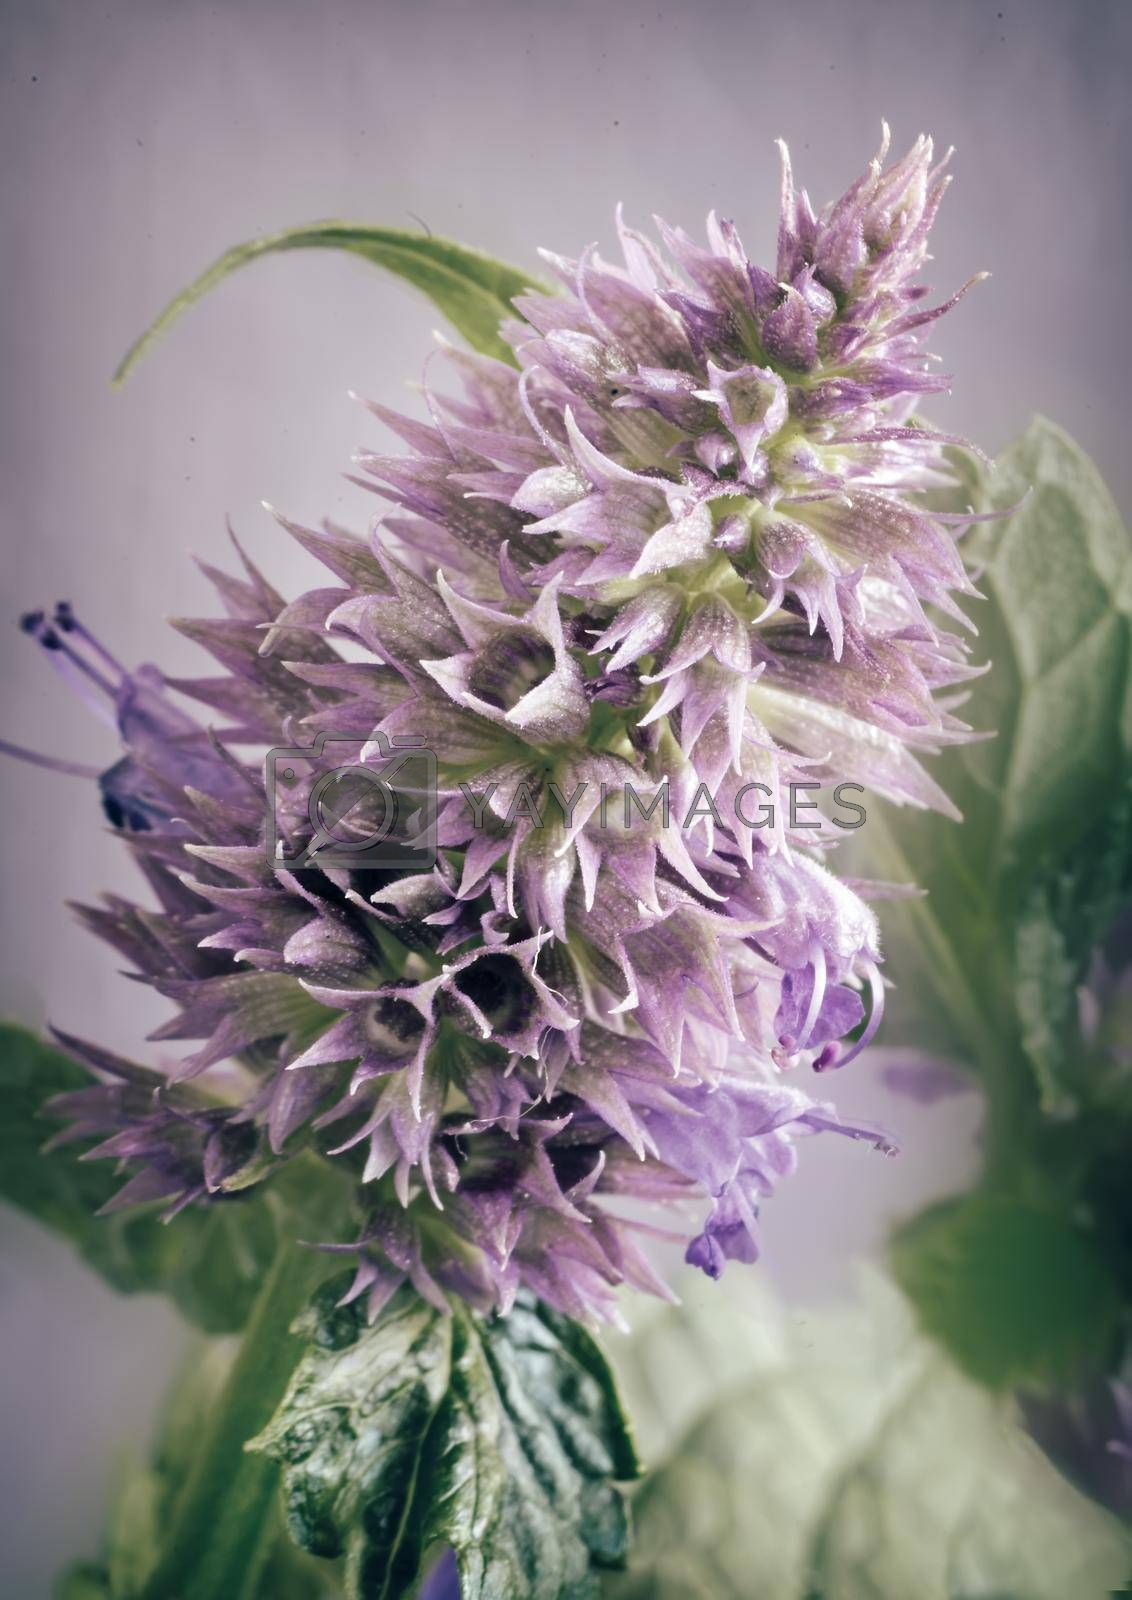 Valuable medicinal plant-aniseed Lofant Lophanthus anisatus . Plant stems with lilac inflorescences and leaves . Presented close-up.